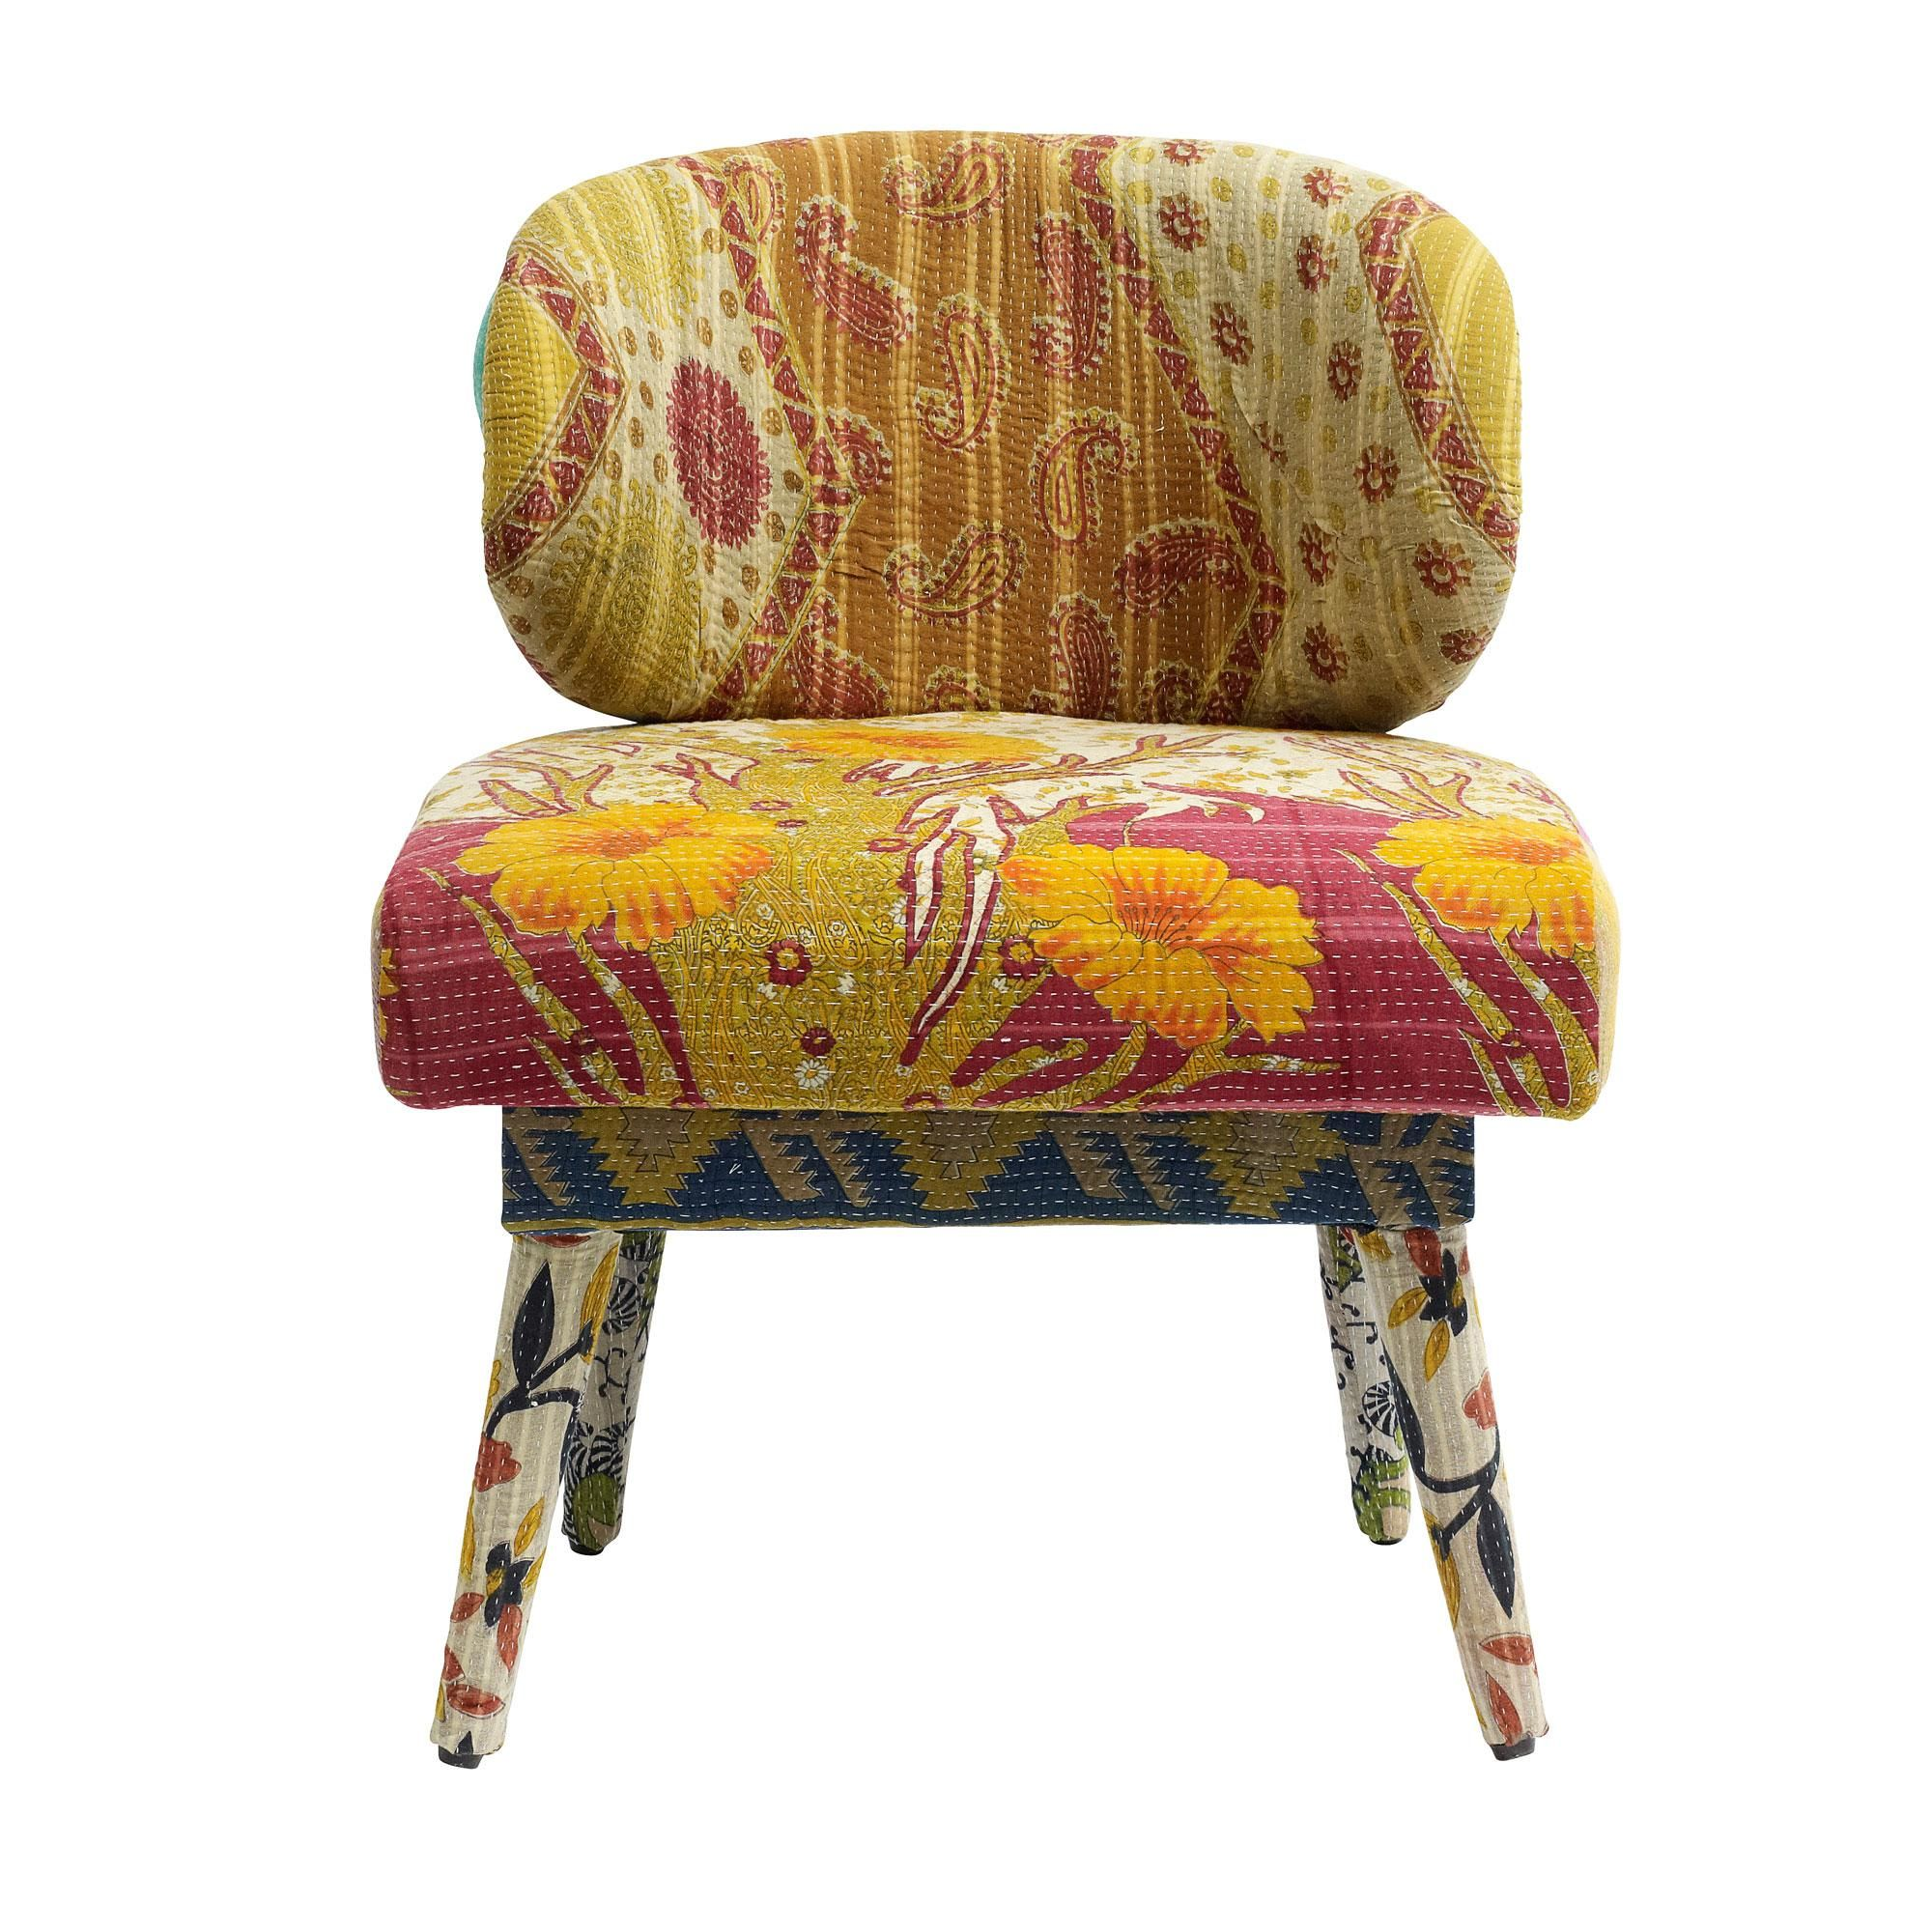 Outstanding Patchwork Chair All Chairs And Stools Chairs And Stools Machost Co Dining Chair Design Ideas Machostcouk